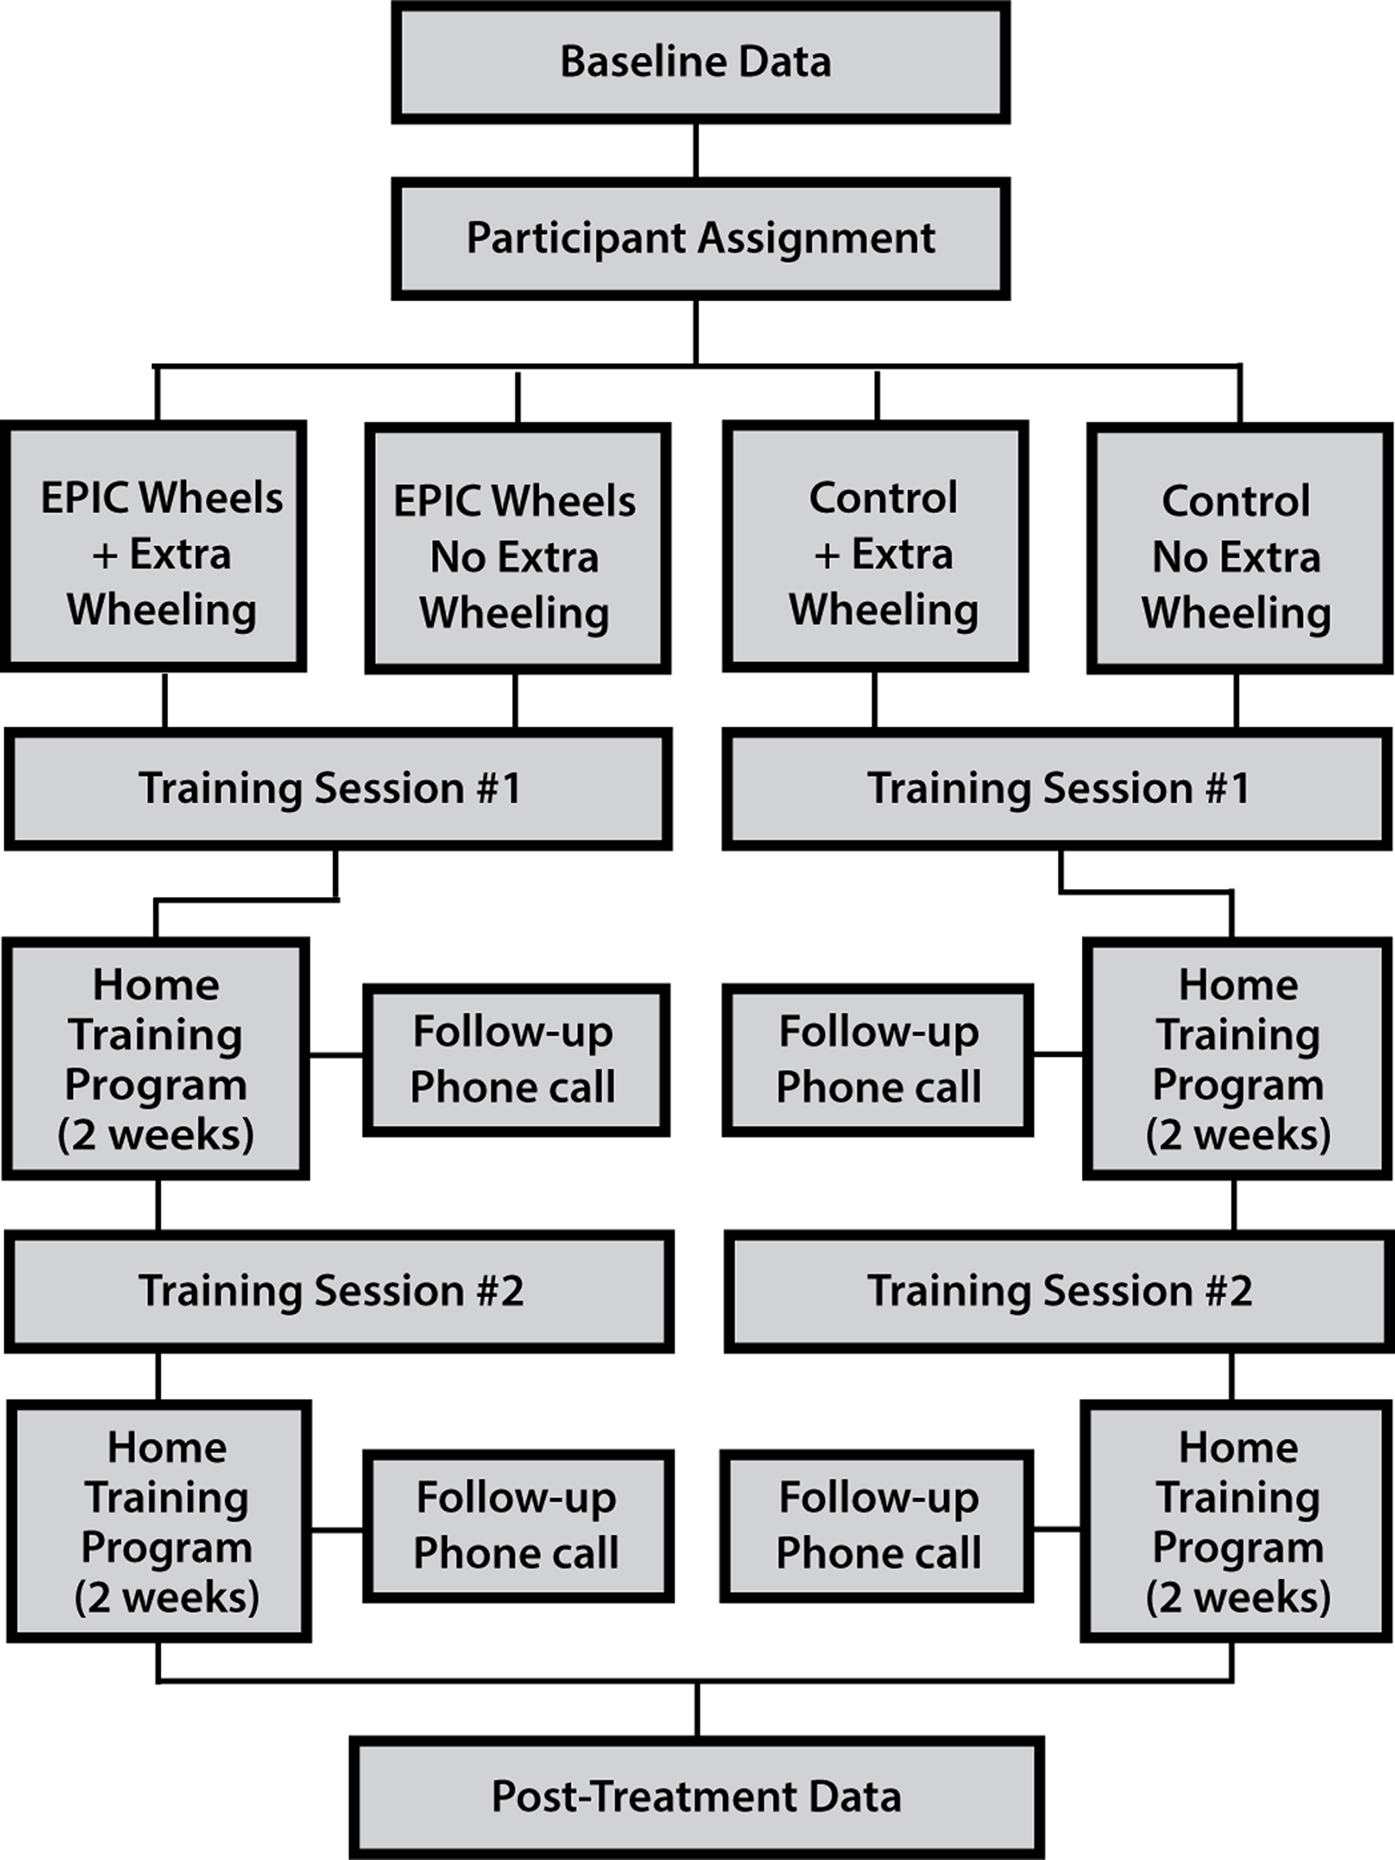 fig 1 full a randomized control trial feasibility evaluation of an mhealth